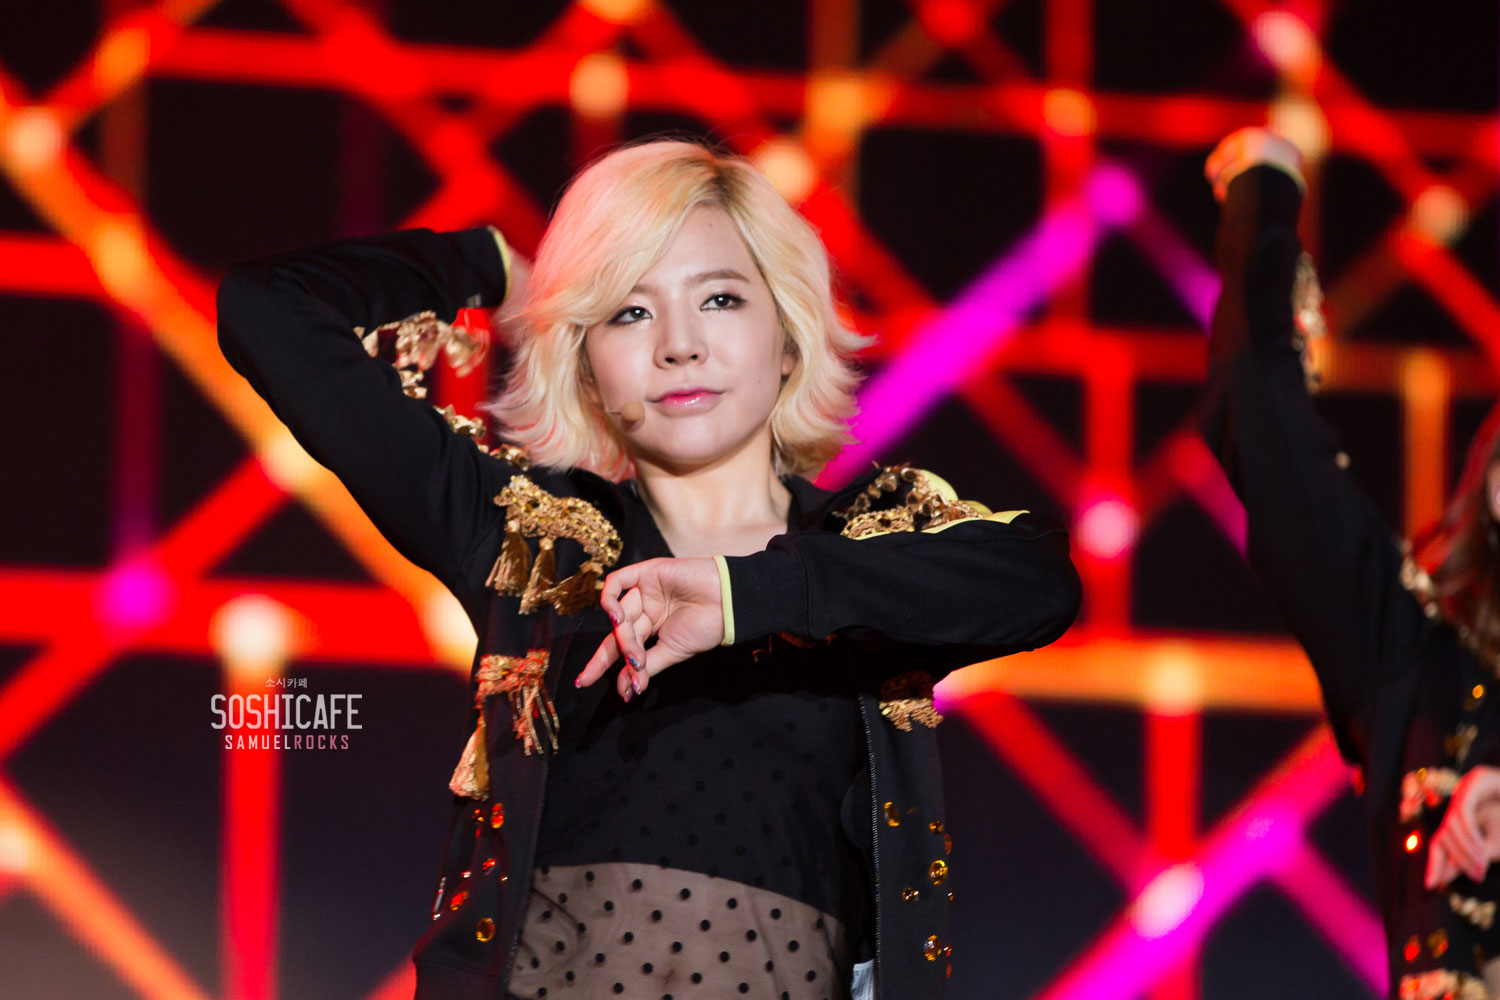 Sunny @ Super Joint Concert in Thailand